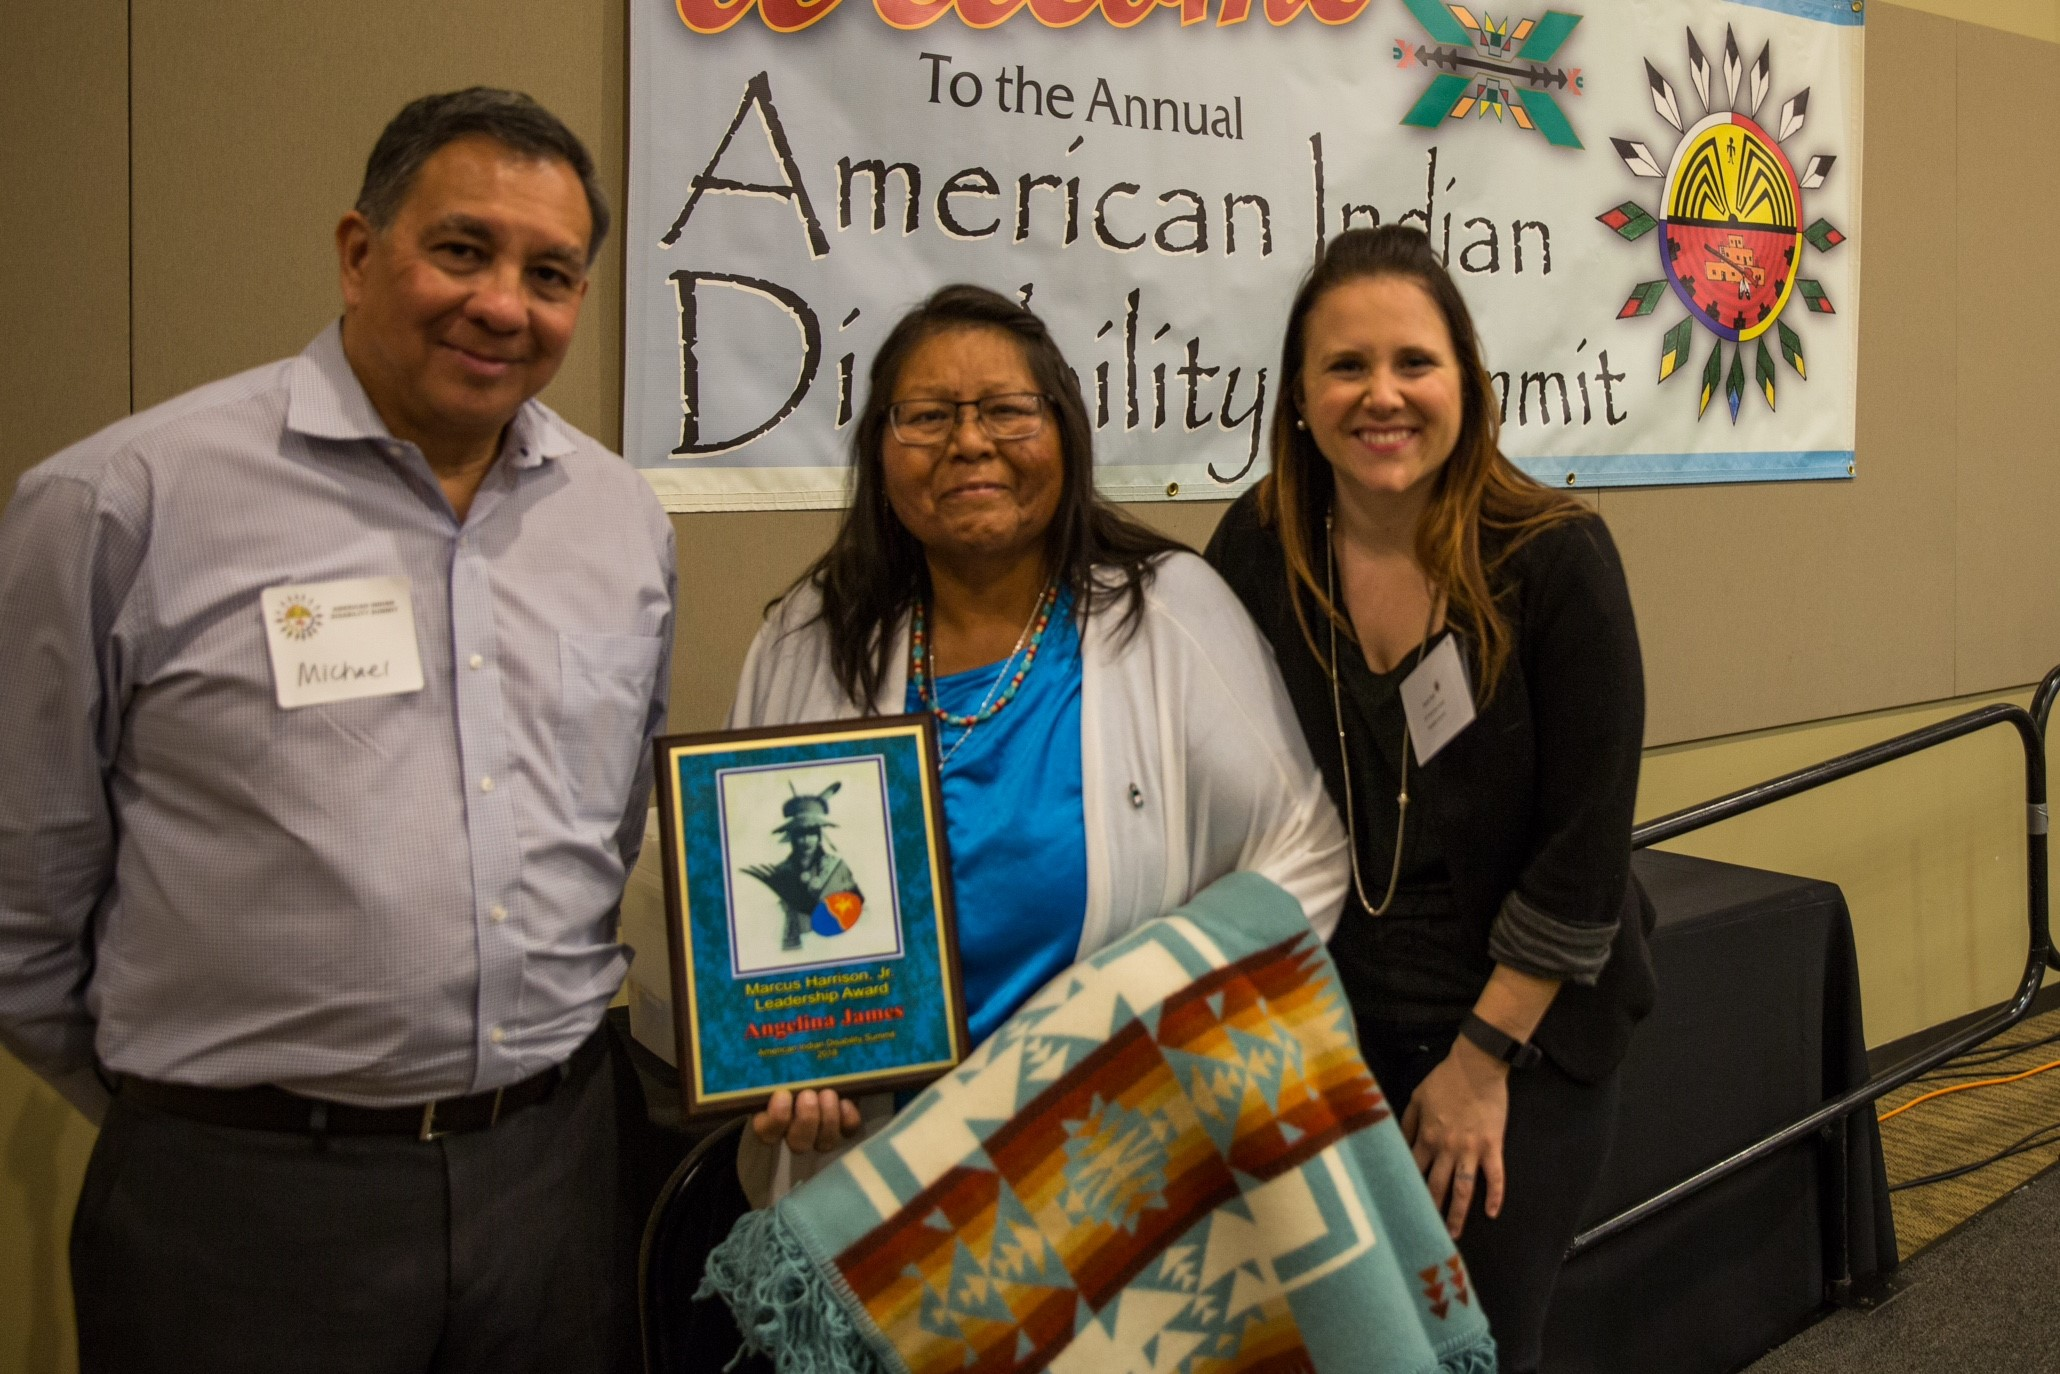 Angie James, Mike Leyva and Sarah Ruf at American Indian Disability Summit